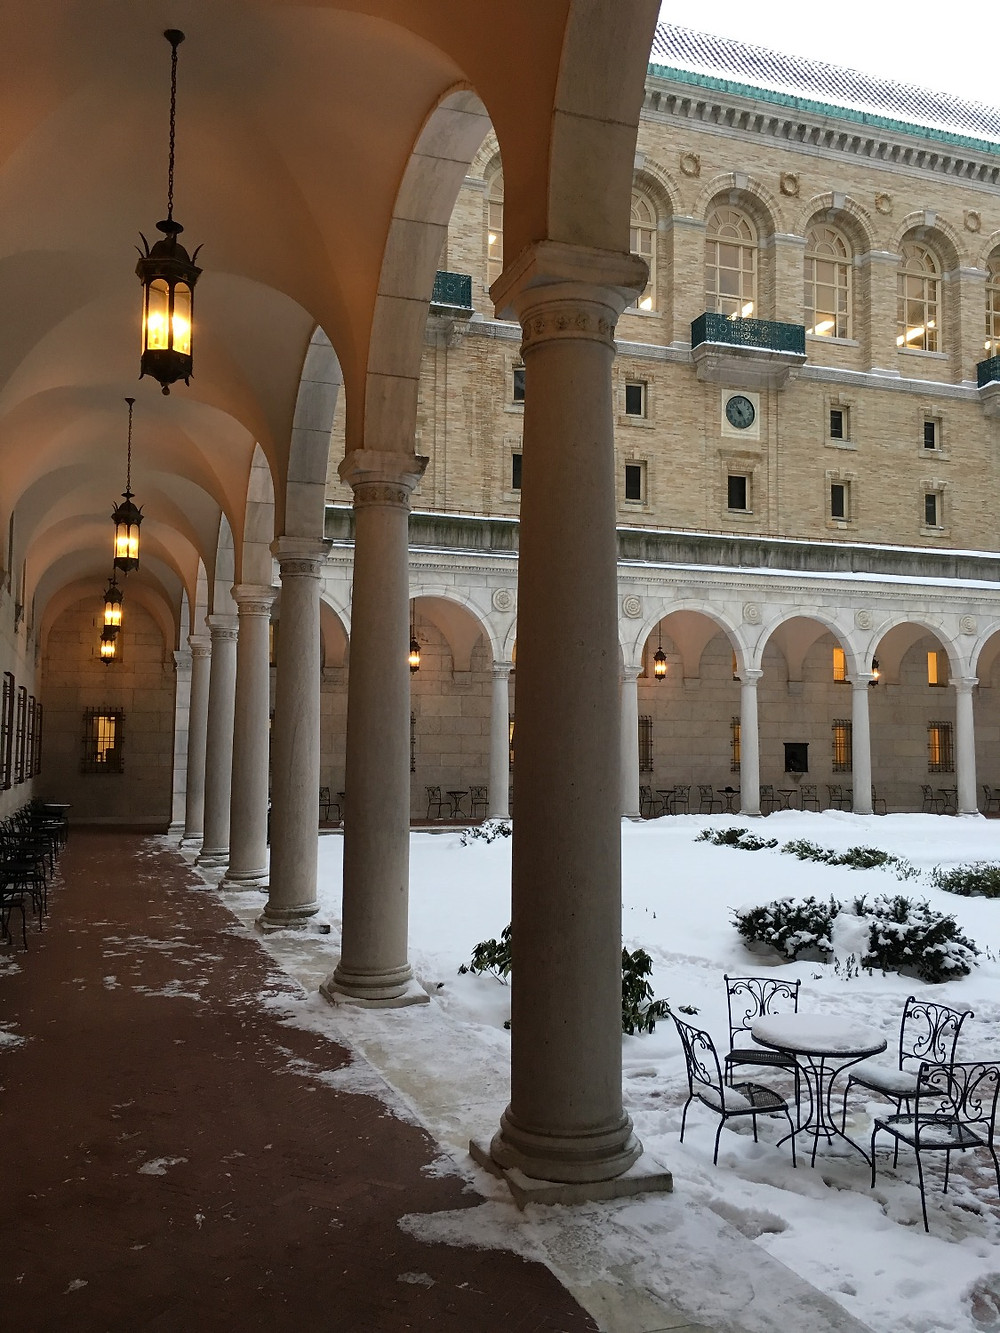 Cloister at Boston's main library in winter. Photo by Diana Dinverno